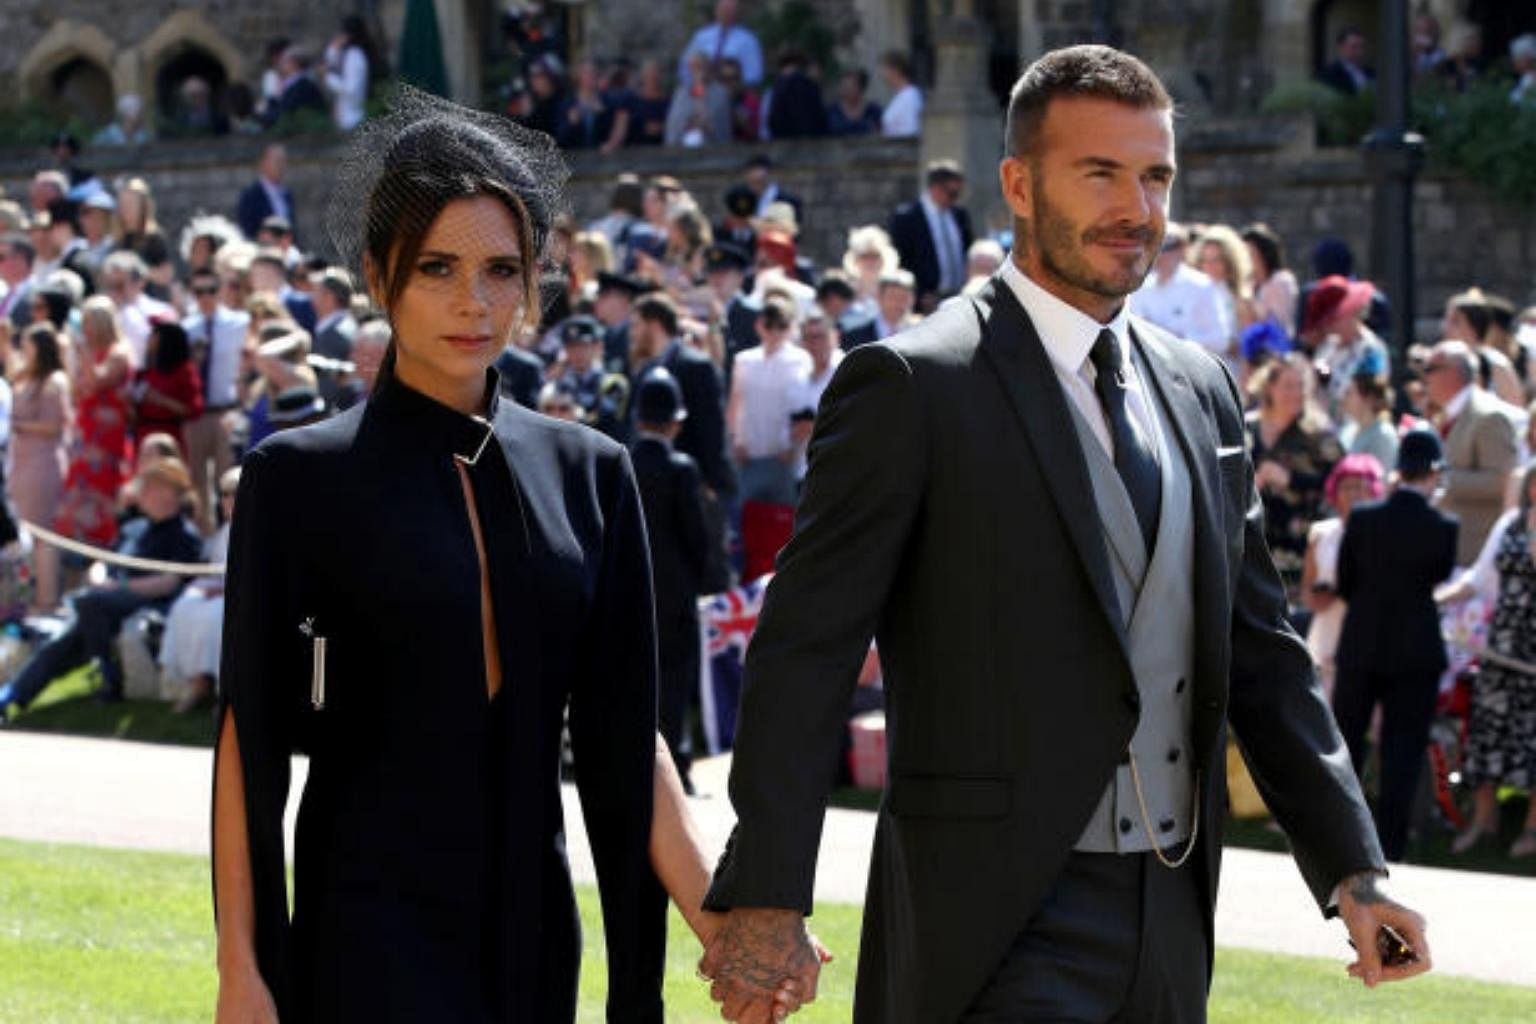 Celebrities Invited To Royal Wedding.Five Key Moments From Britain S Royal Wedding Europe News Top